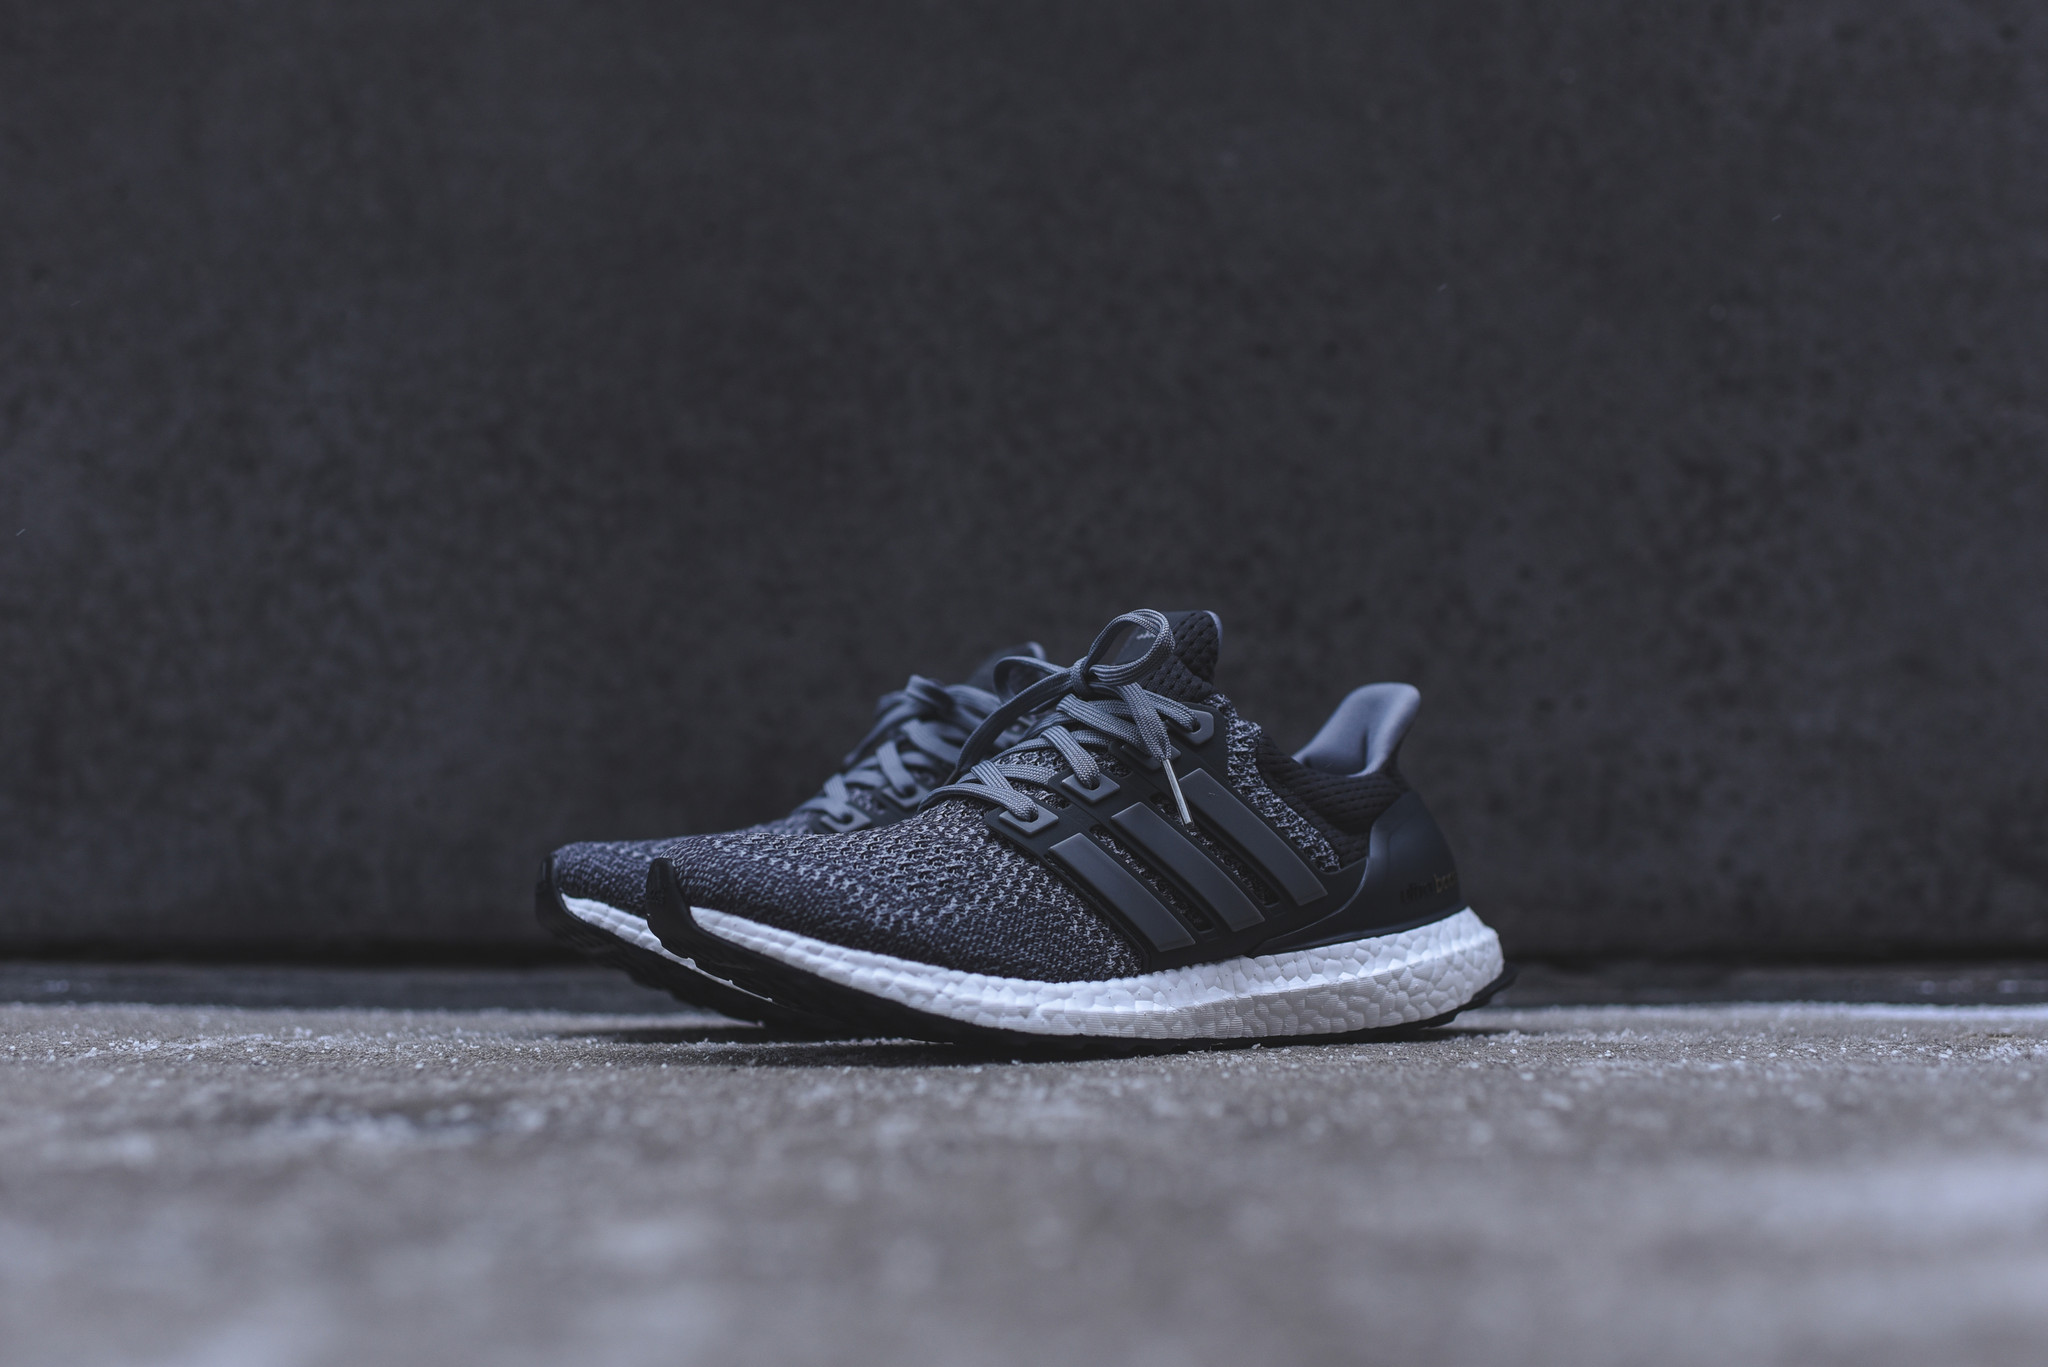 best service b9acf 5c3db The adidas Ultra Boost 3.0 in Black is Available Now ...